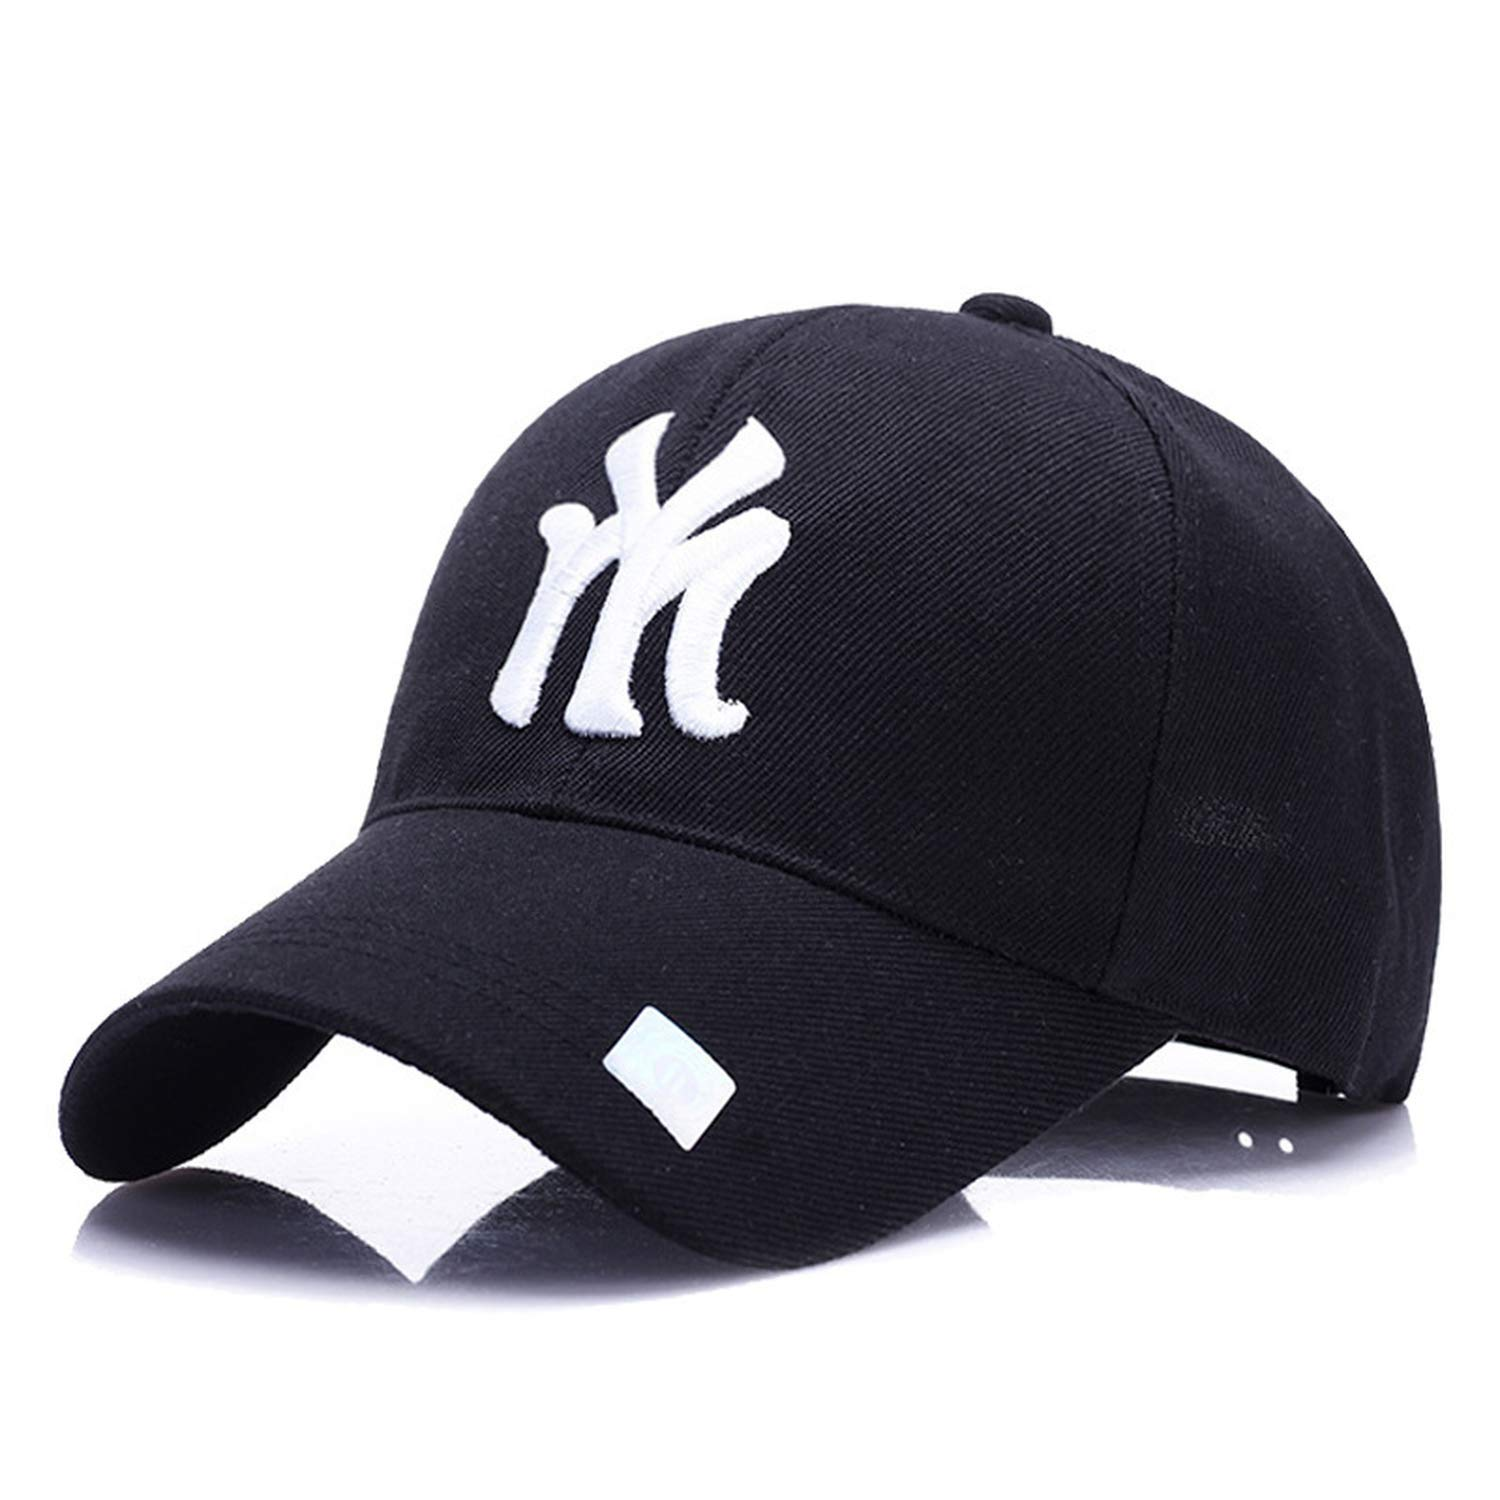 b92f4bf1c87 Amazon.com  LONIY NY Baseball Cap Summer mesh Hats Black Adult Unisex  Casual Baseball caps Adjustable Cap Snapback caps Outdoors  Clothing